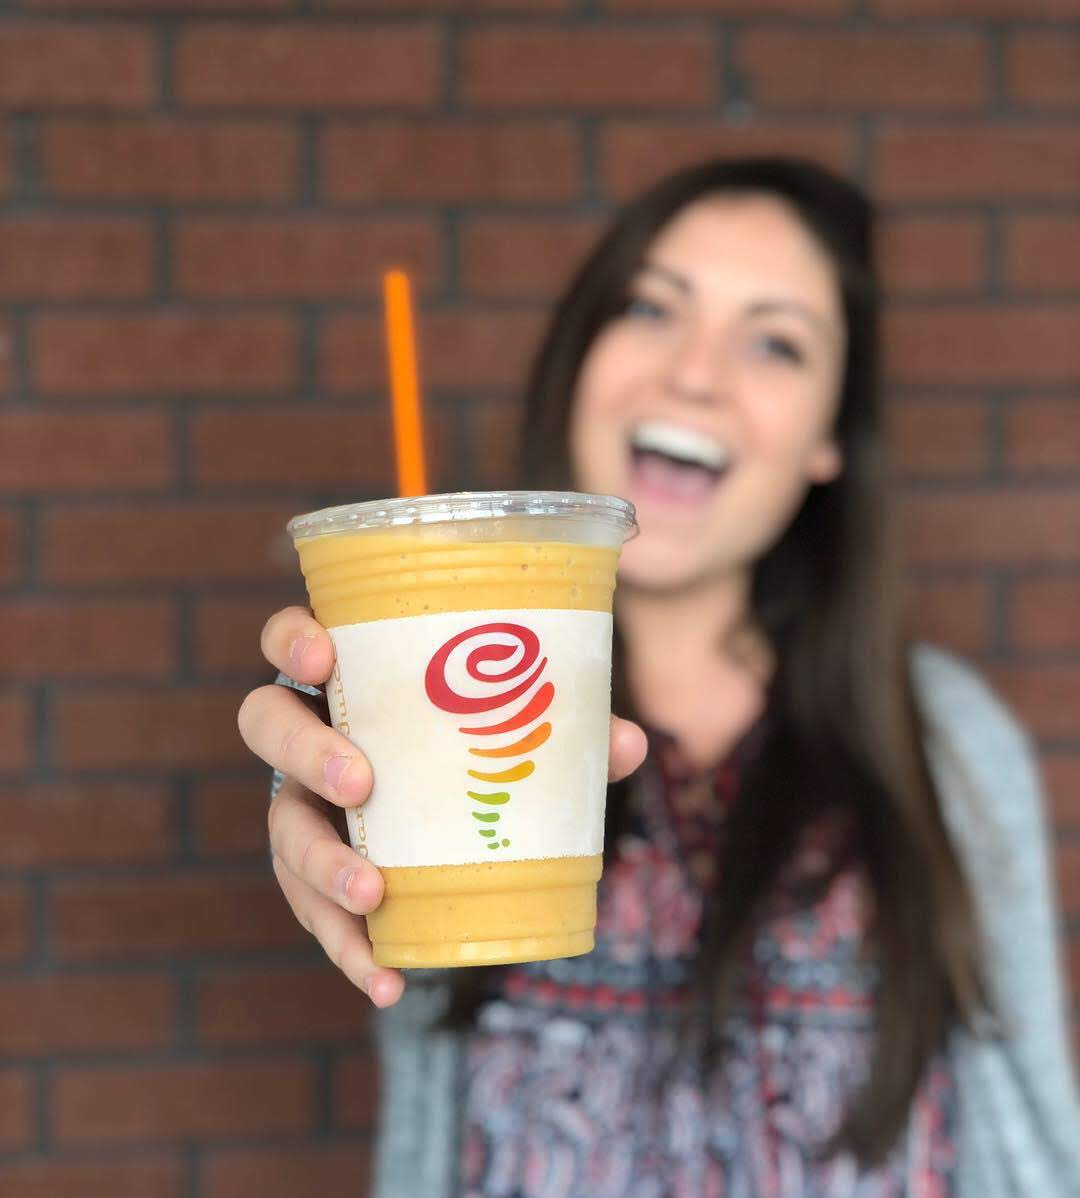 A female smiling with a Jahma Juice smoothie